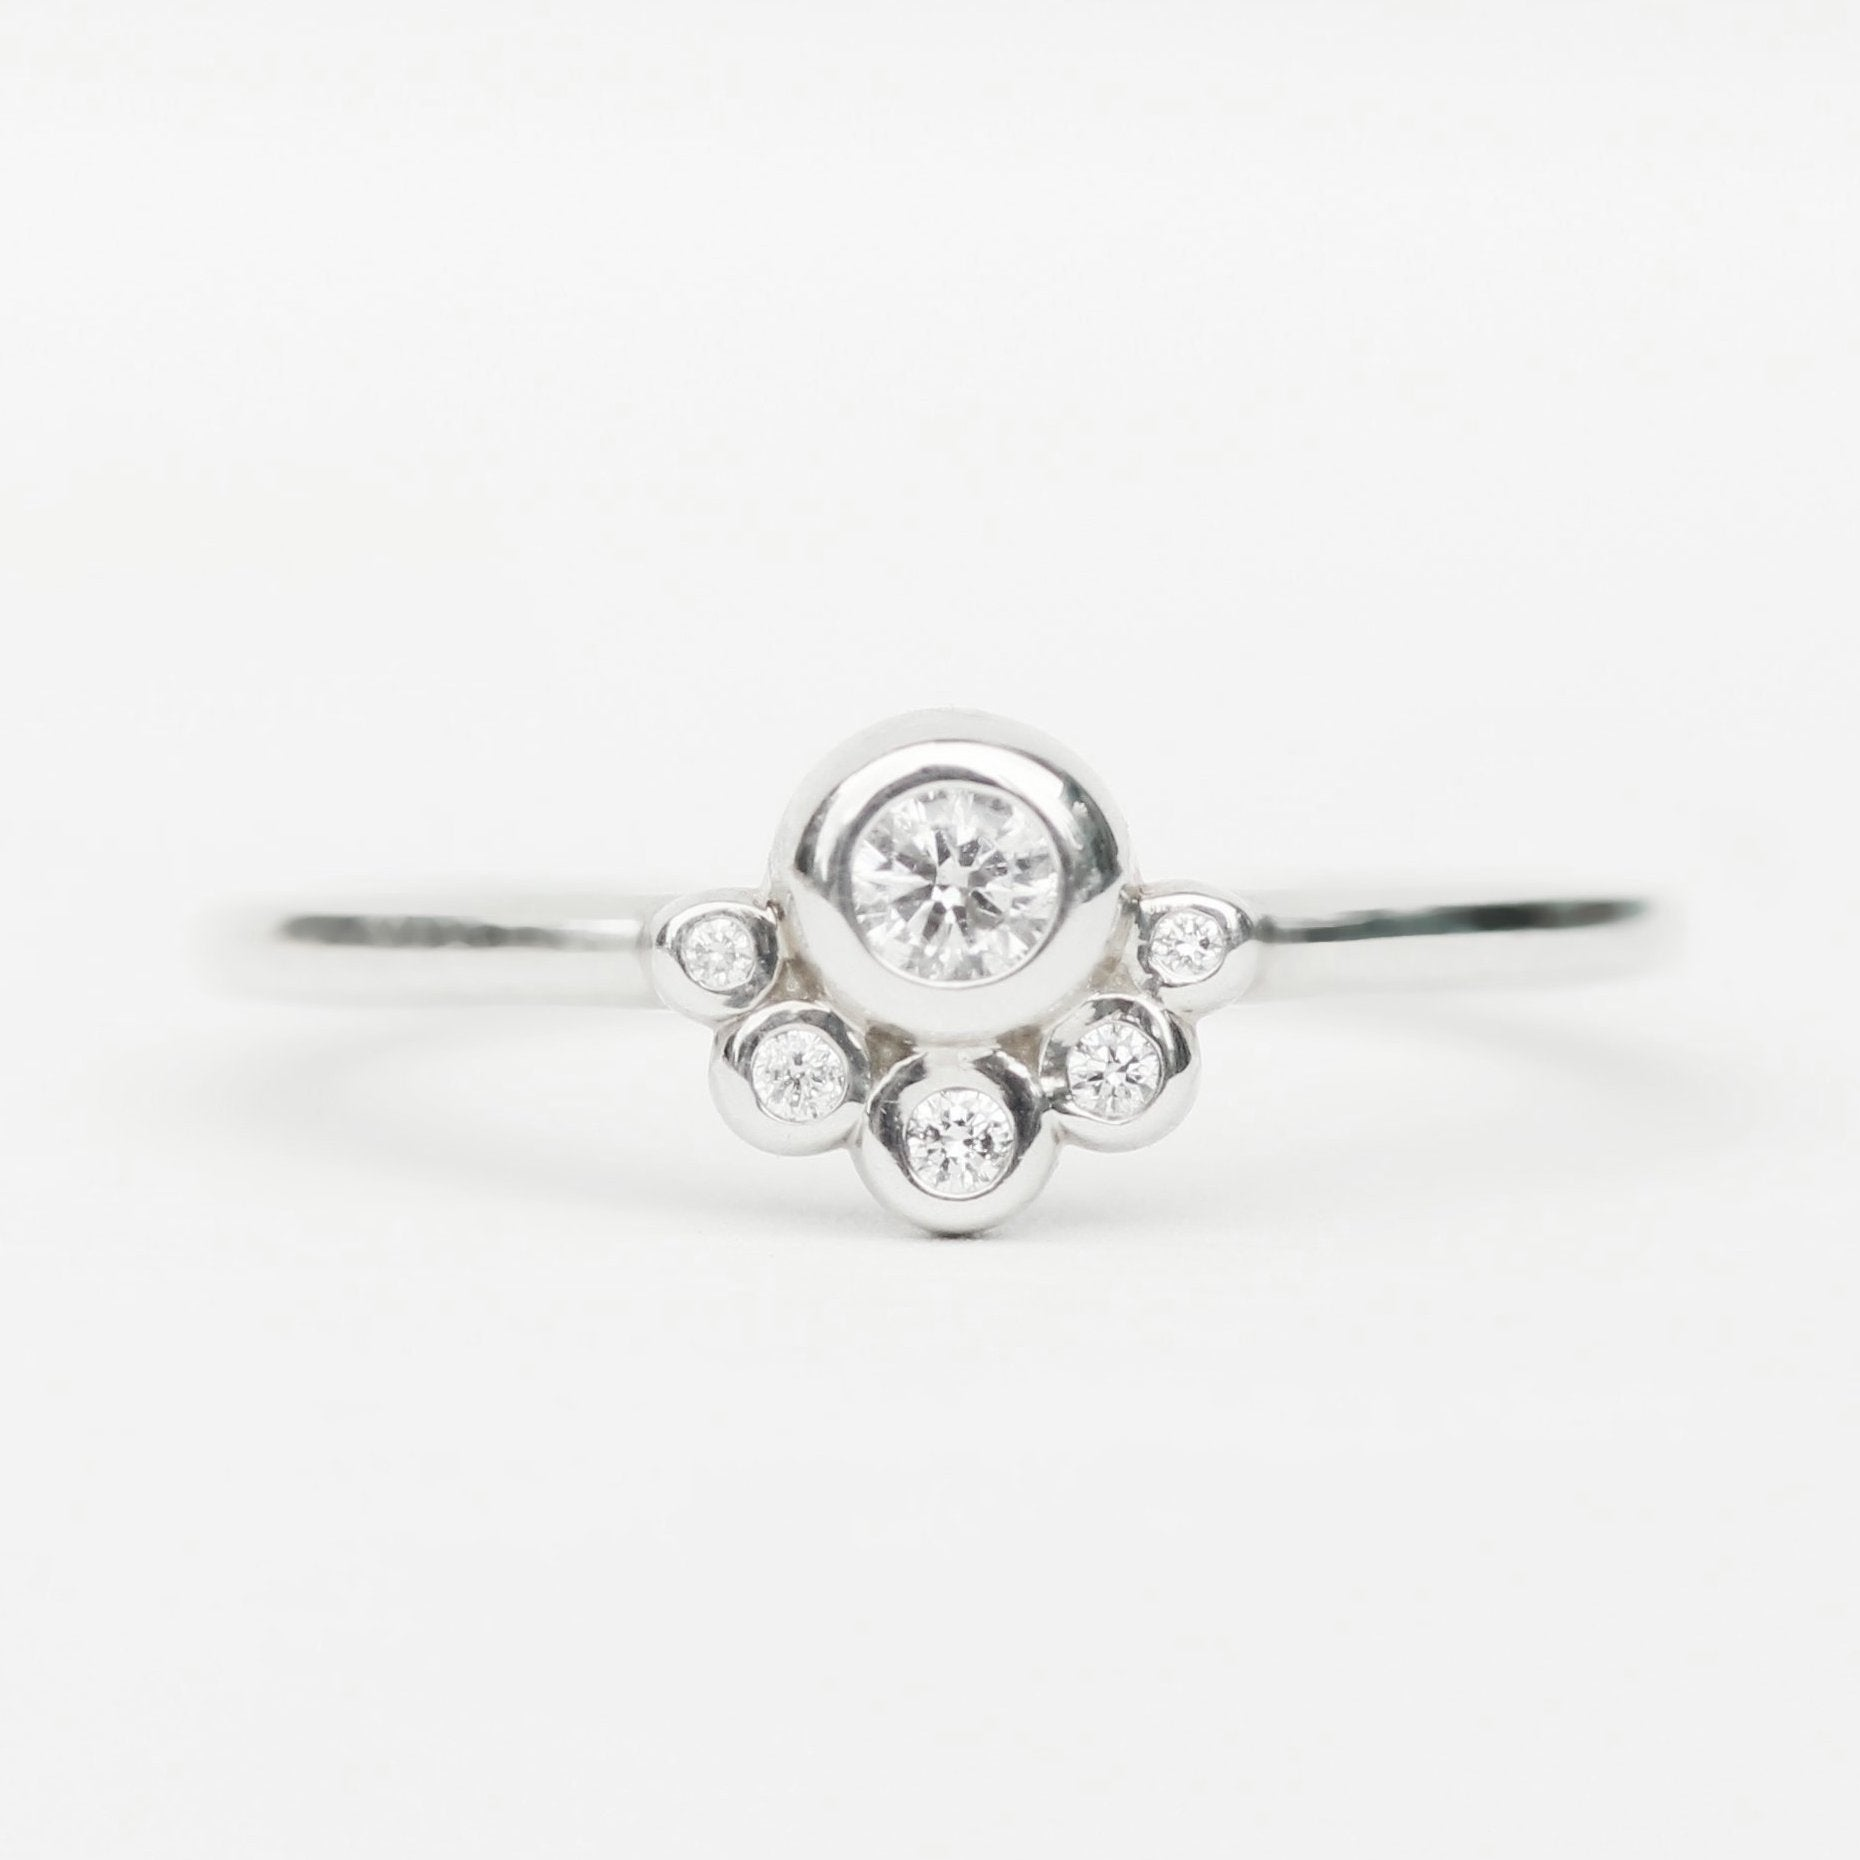 Jules ring with white diamonds in 10k white gold - ready to size and ship - Salt & Pepper Celestial Diamond Engagement Rings and Wedding Bands  by Midwinter Co.